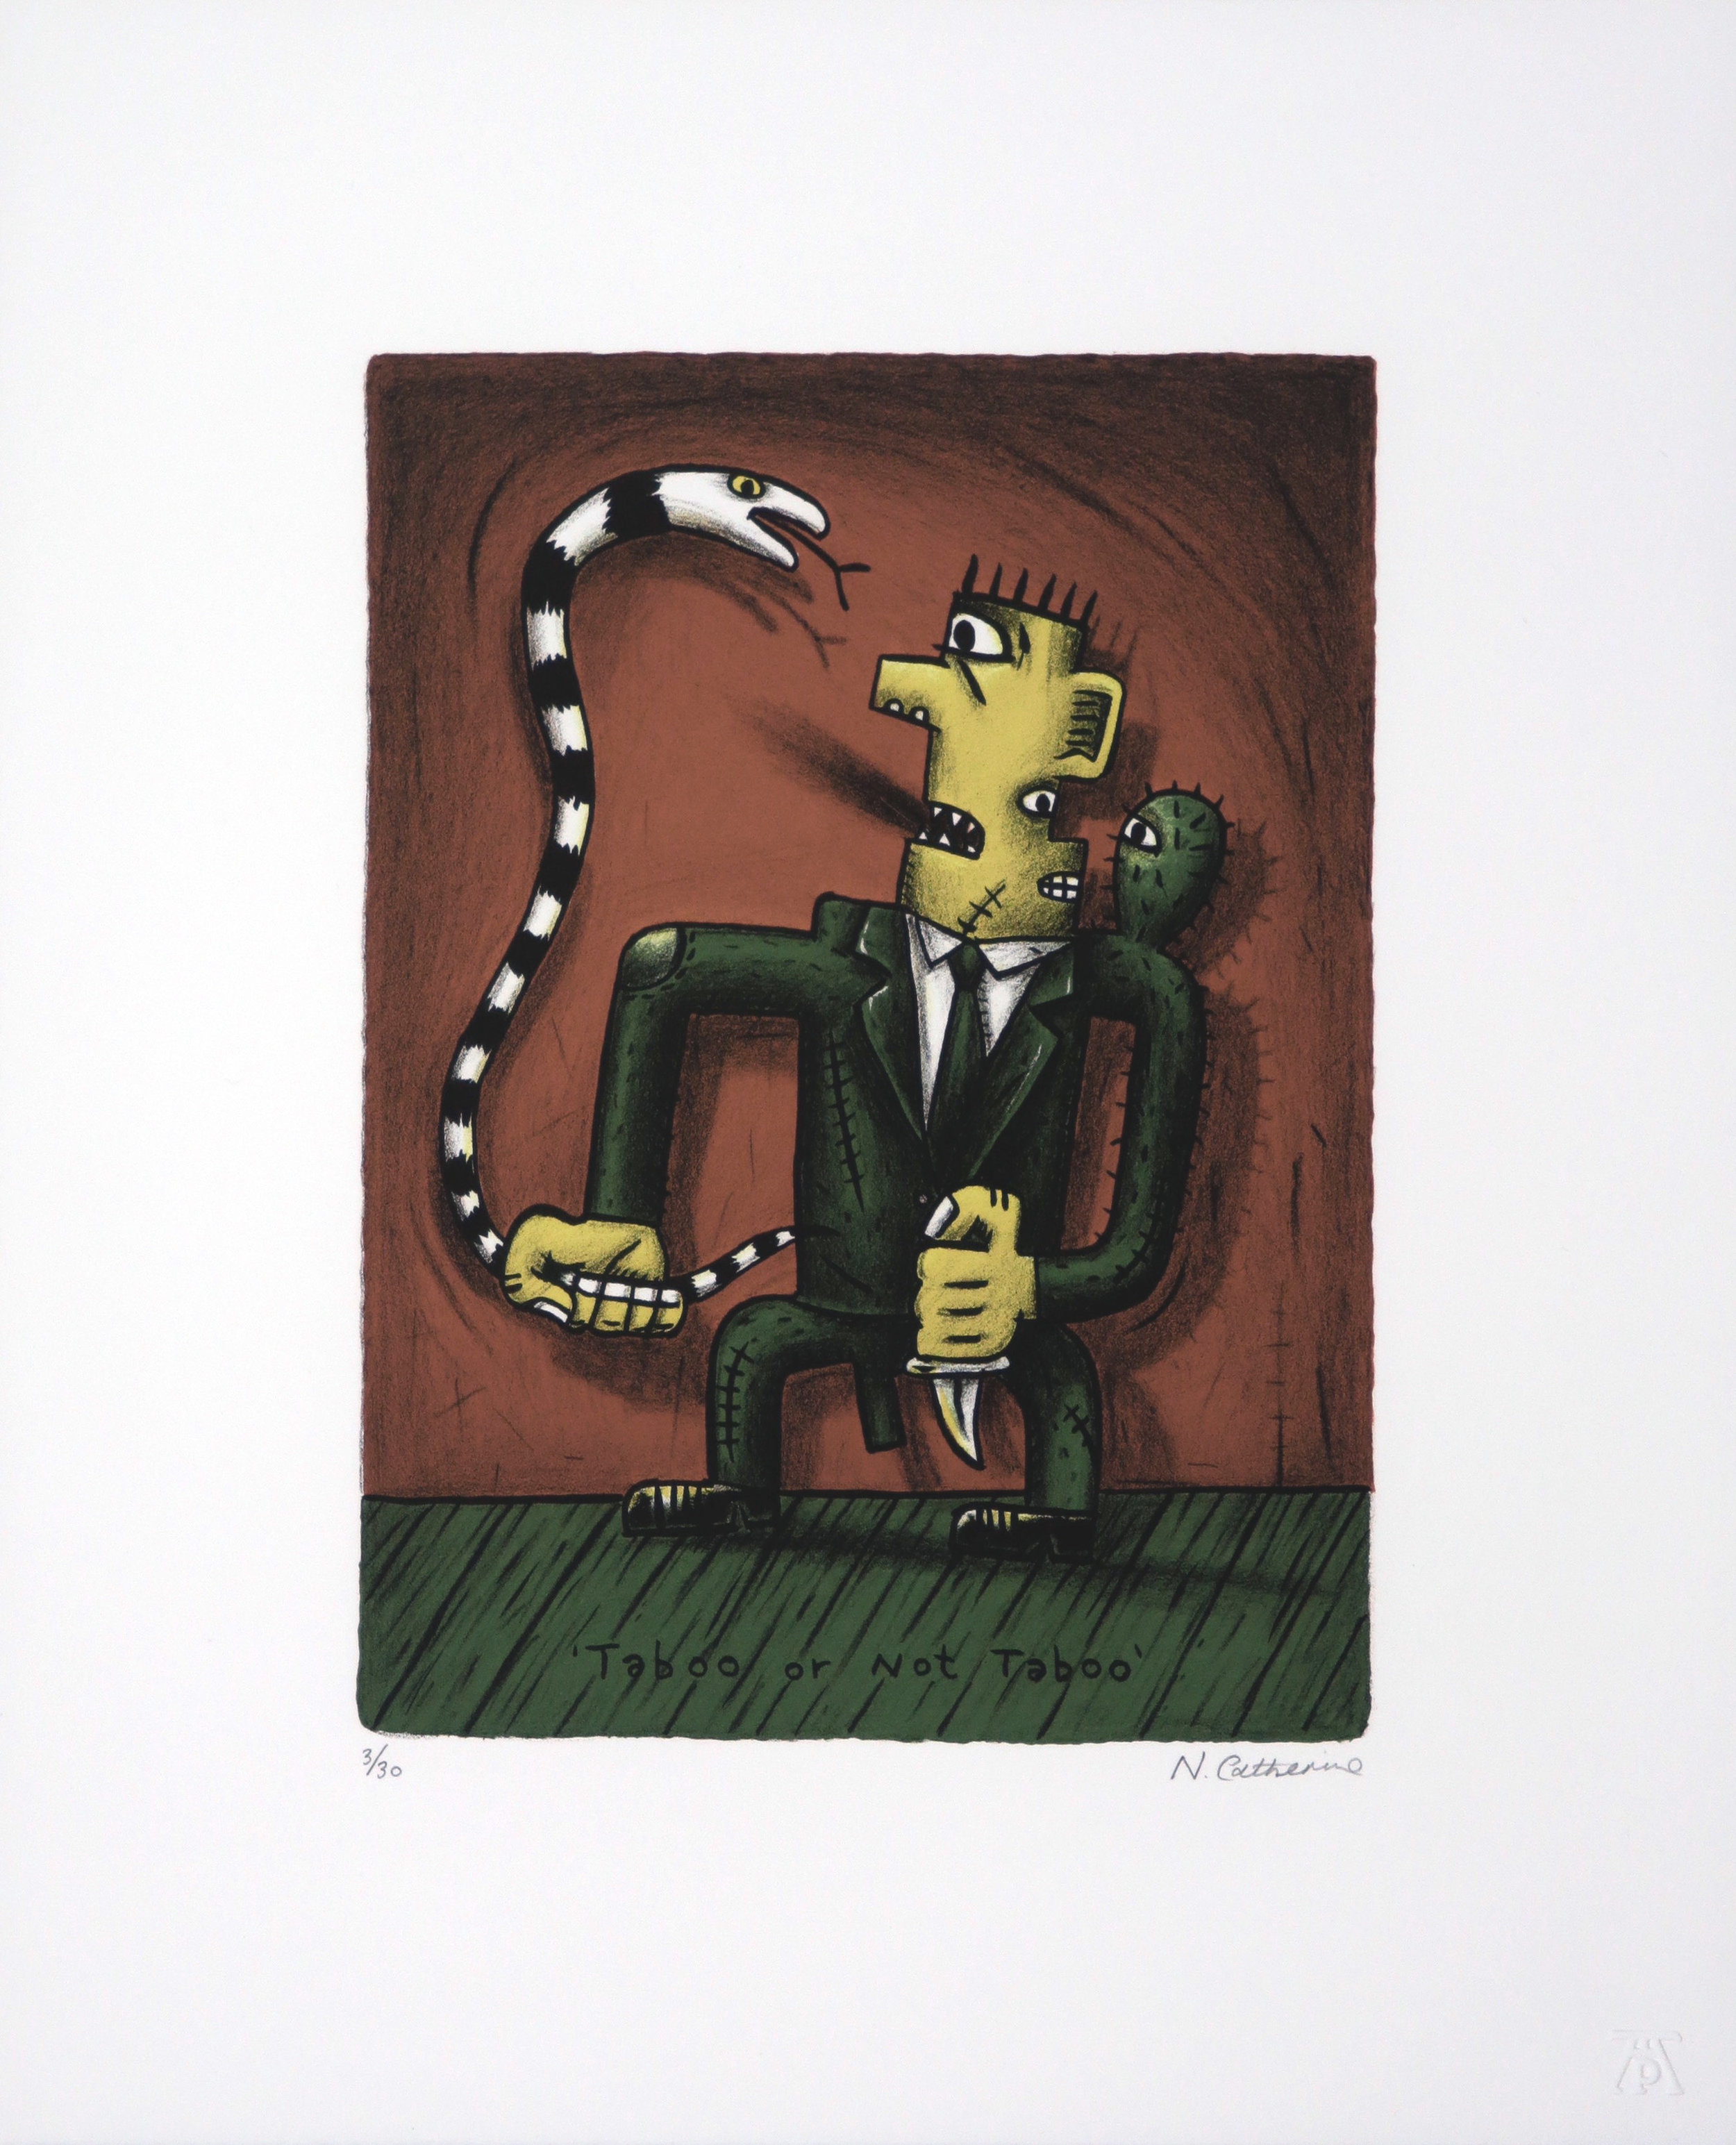 Norman Catherine, Taboo or Not Taboo, Lithograph, 300x375.jpg